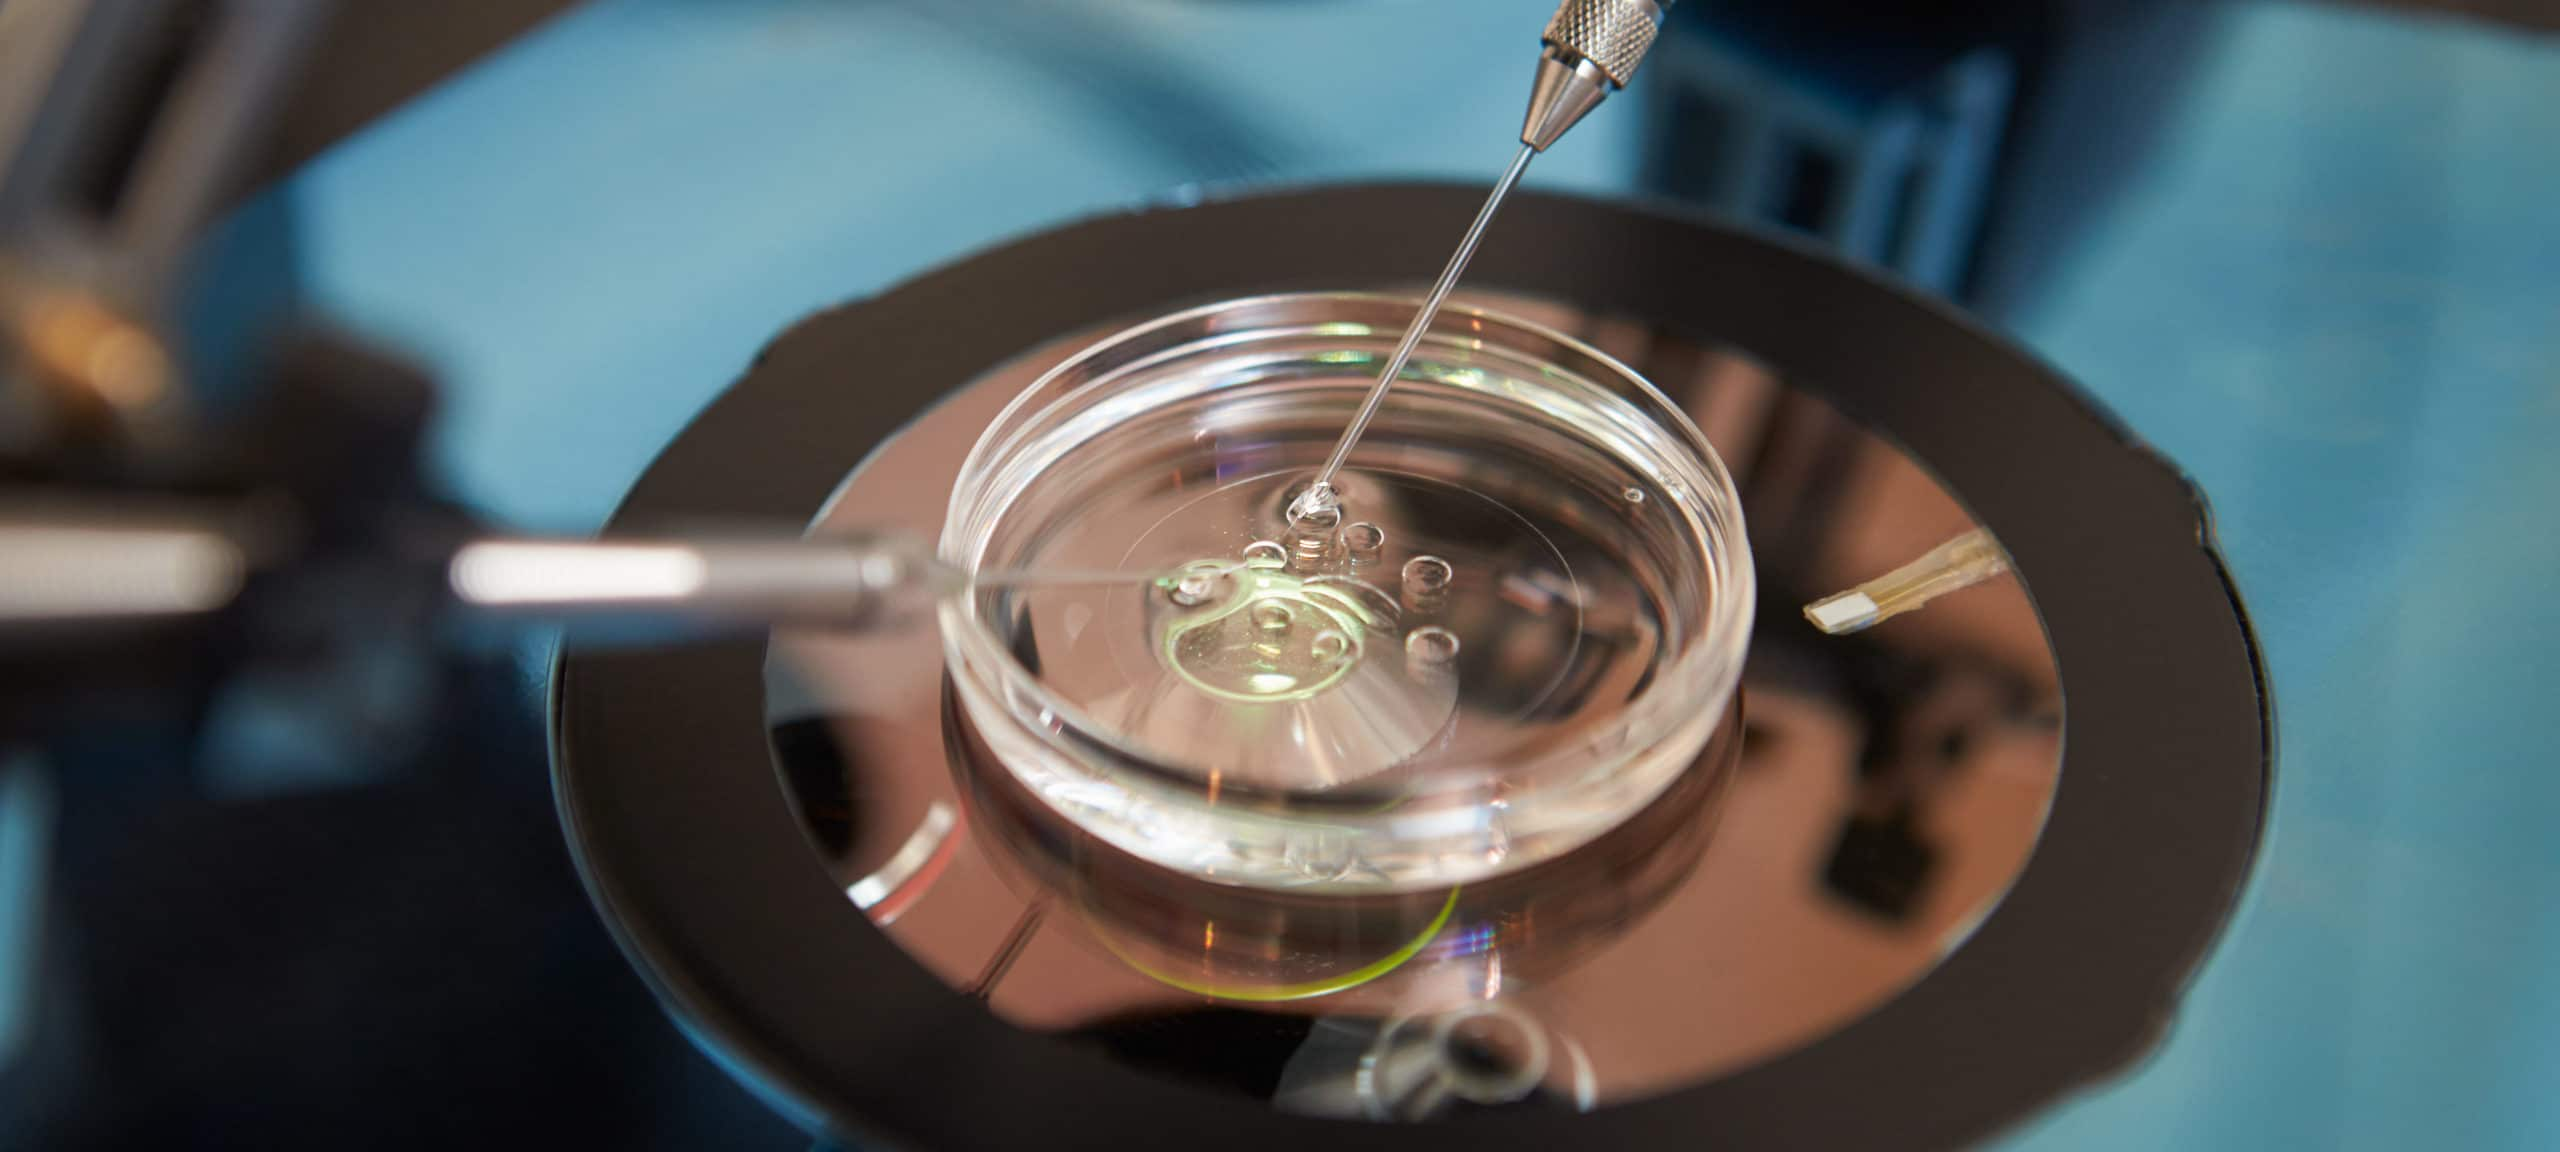 Laboratory Fertilization Of Eggs In IVF Treatment